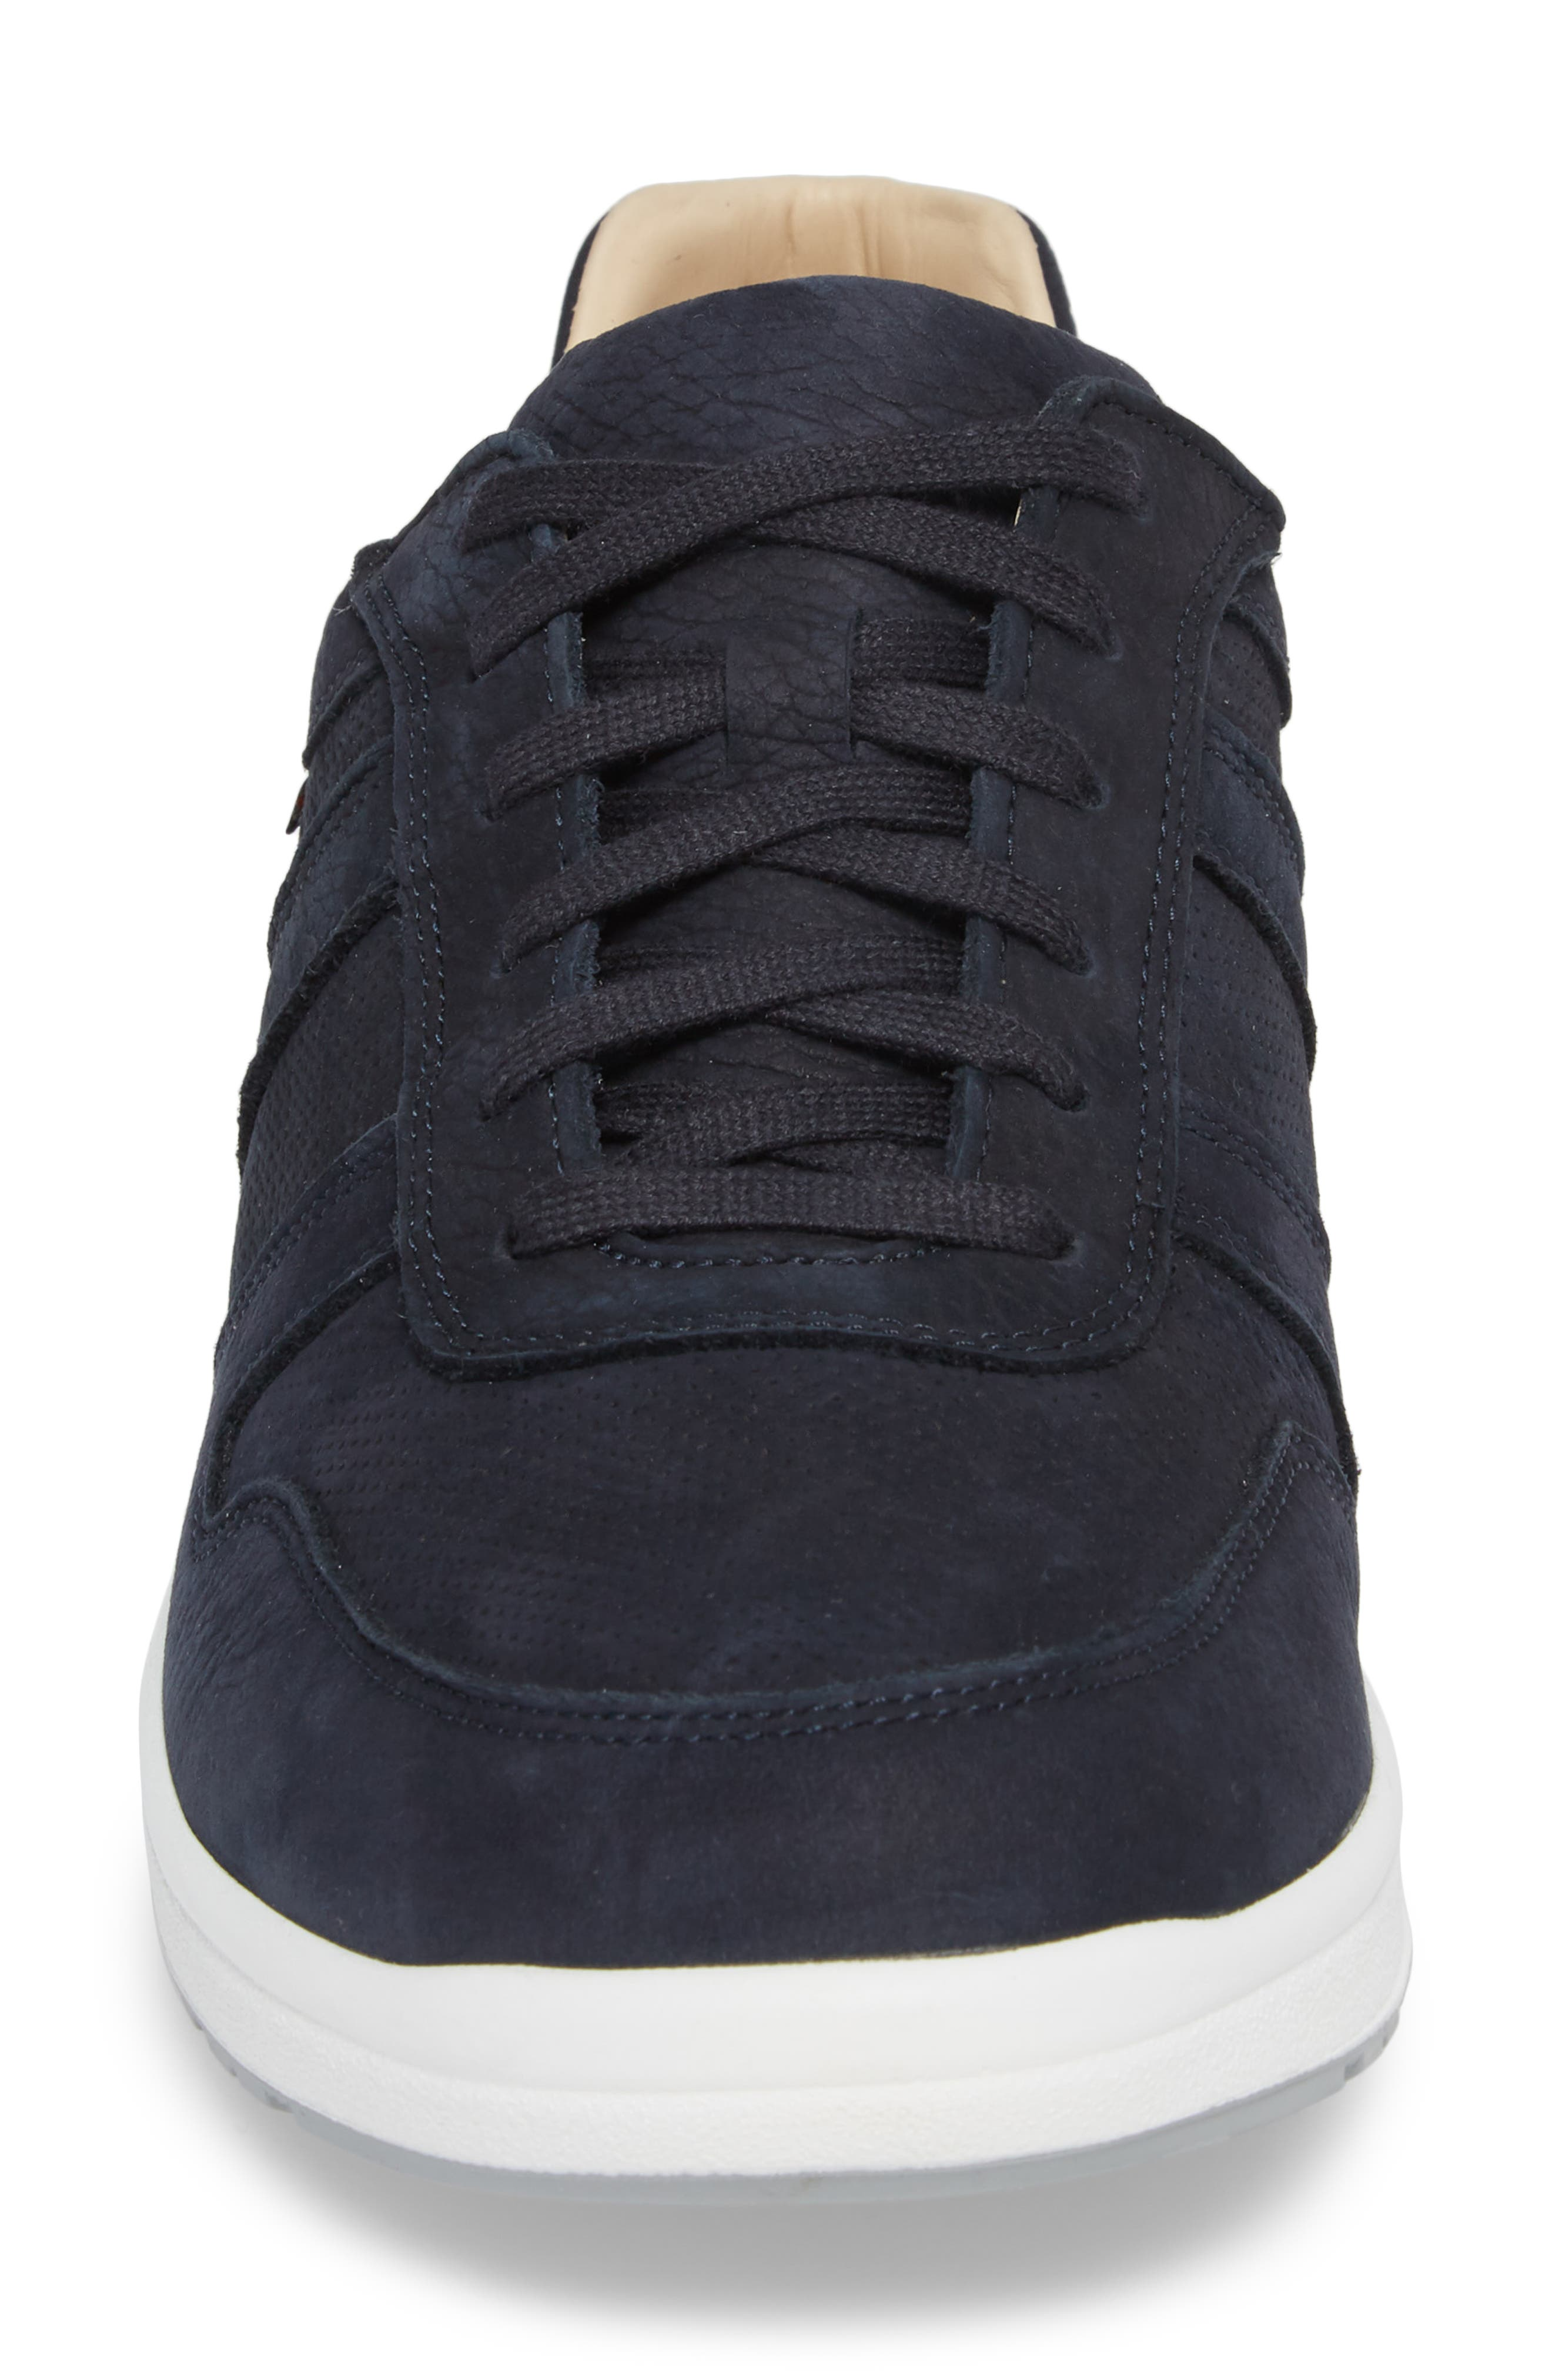 Vito Perforated Sneaker,                             Alternate thumbnail 4, color,                             Navy